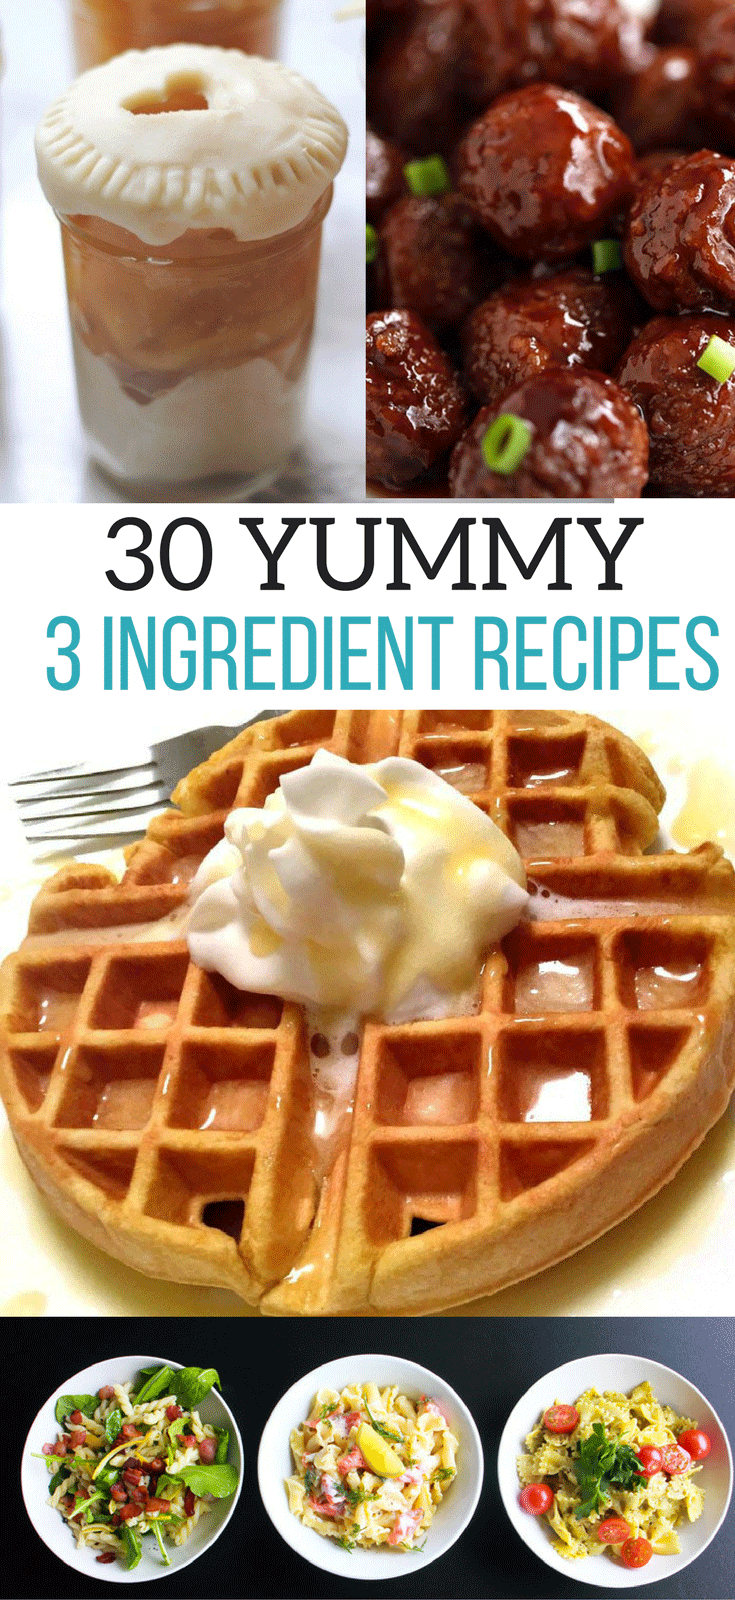 30 Yummy 3 Ingredient Recipes